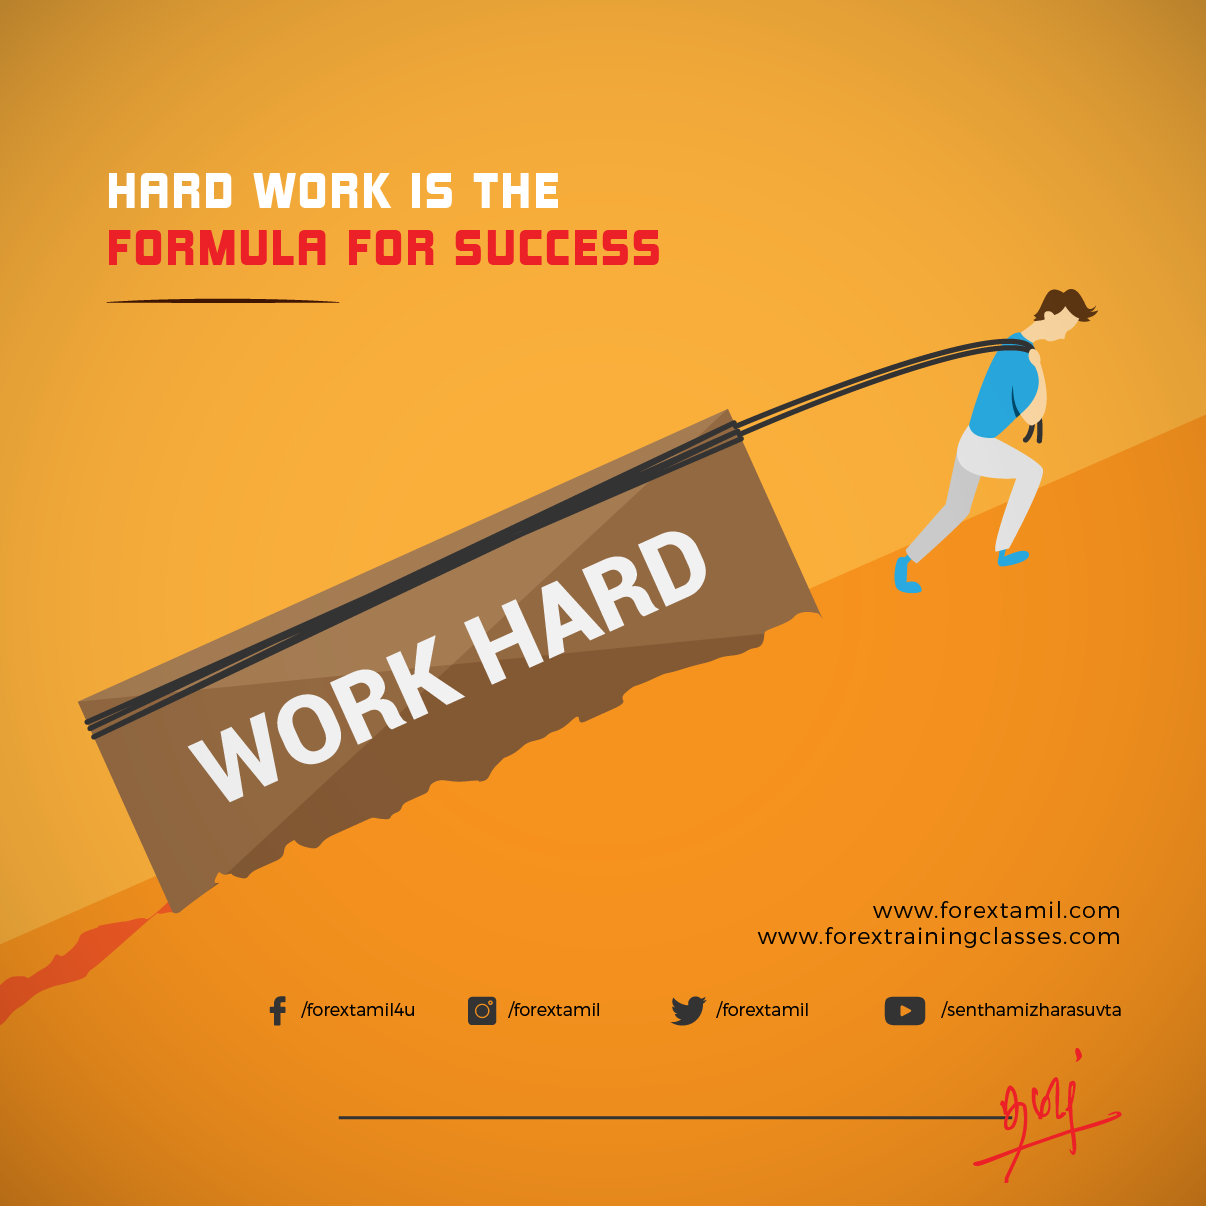 To achieve success work hard |Forex motivational quote